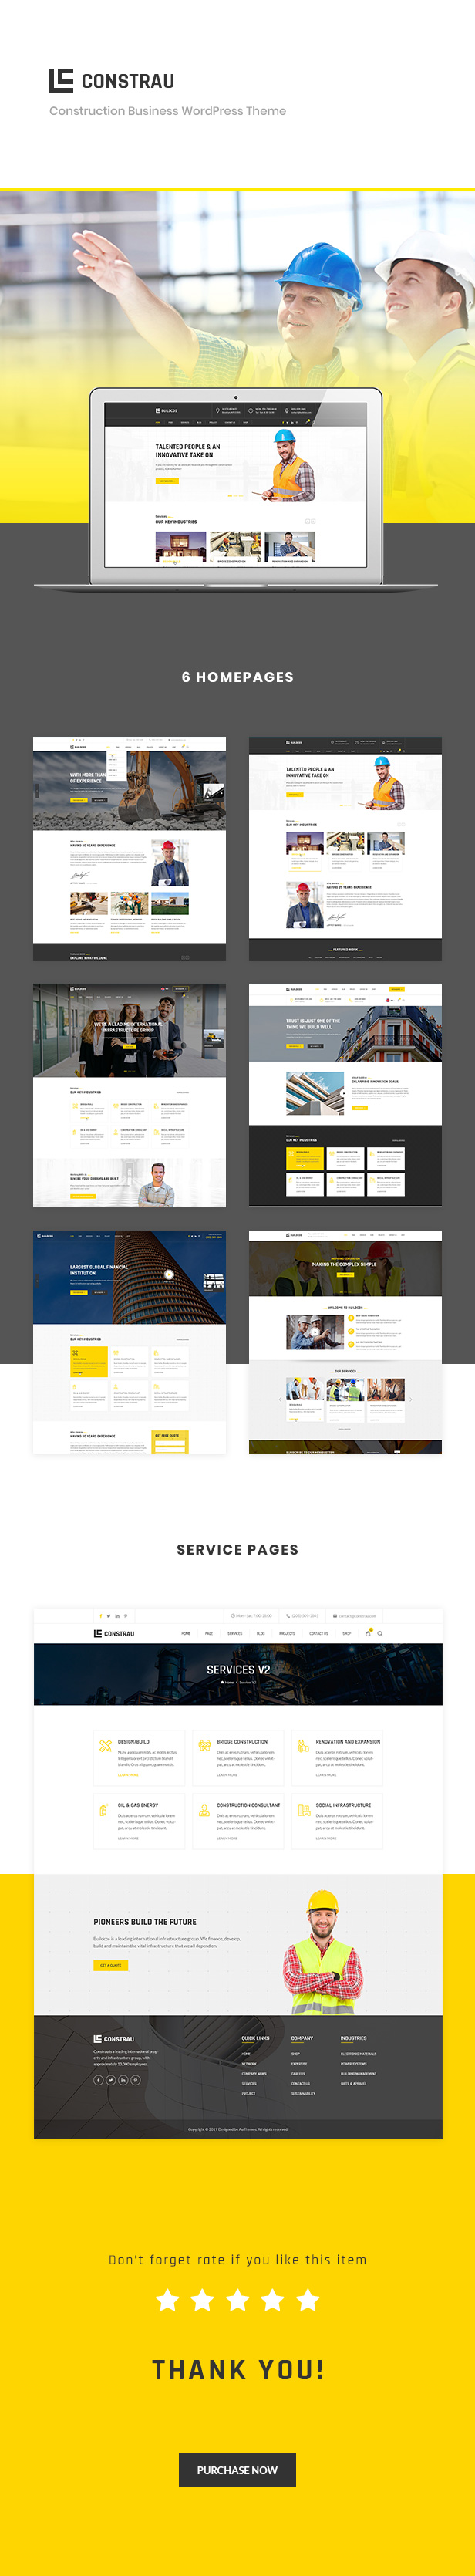 Constrau - Construction Business WordPress Theme